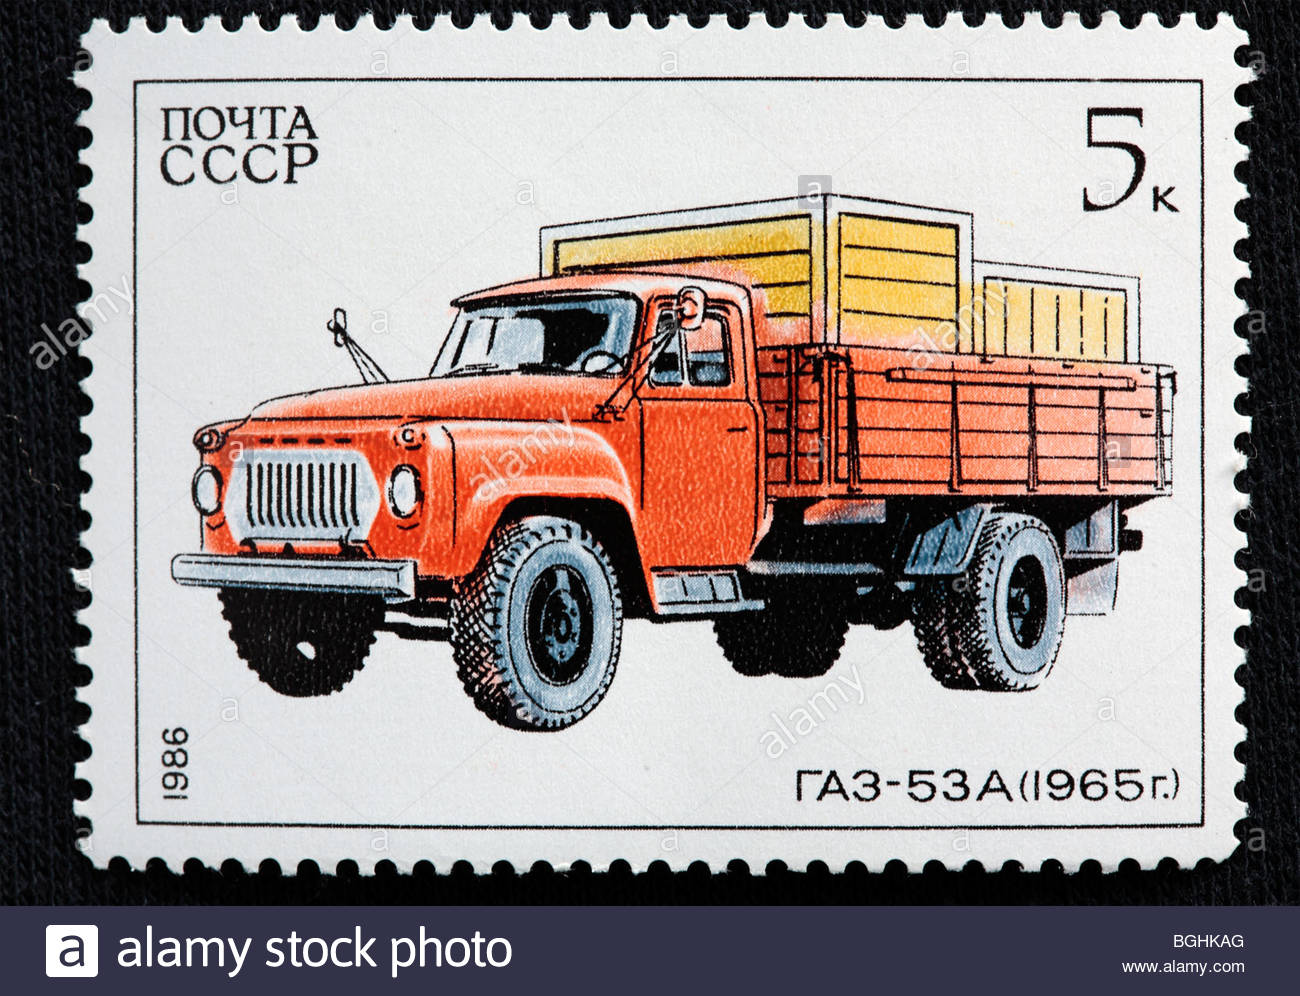 Truck 'GAZ-53A' (1965), postage stamp, USSR, 1986 - Stock Image